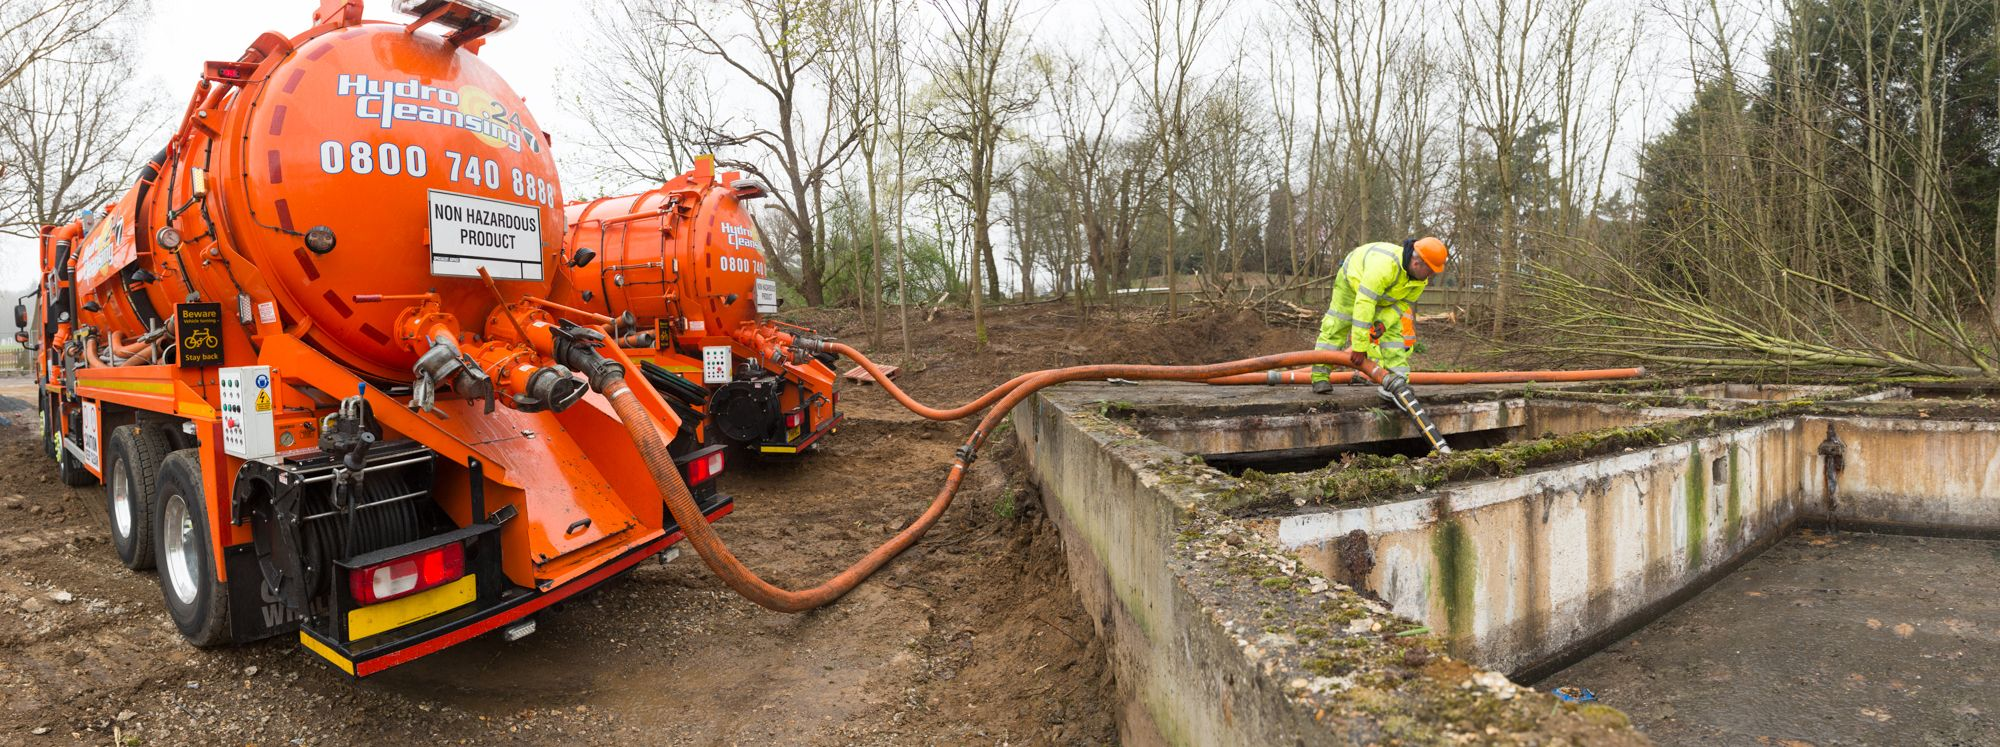 Wet waste removal Septic tank, Septic tank service